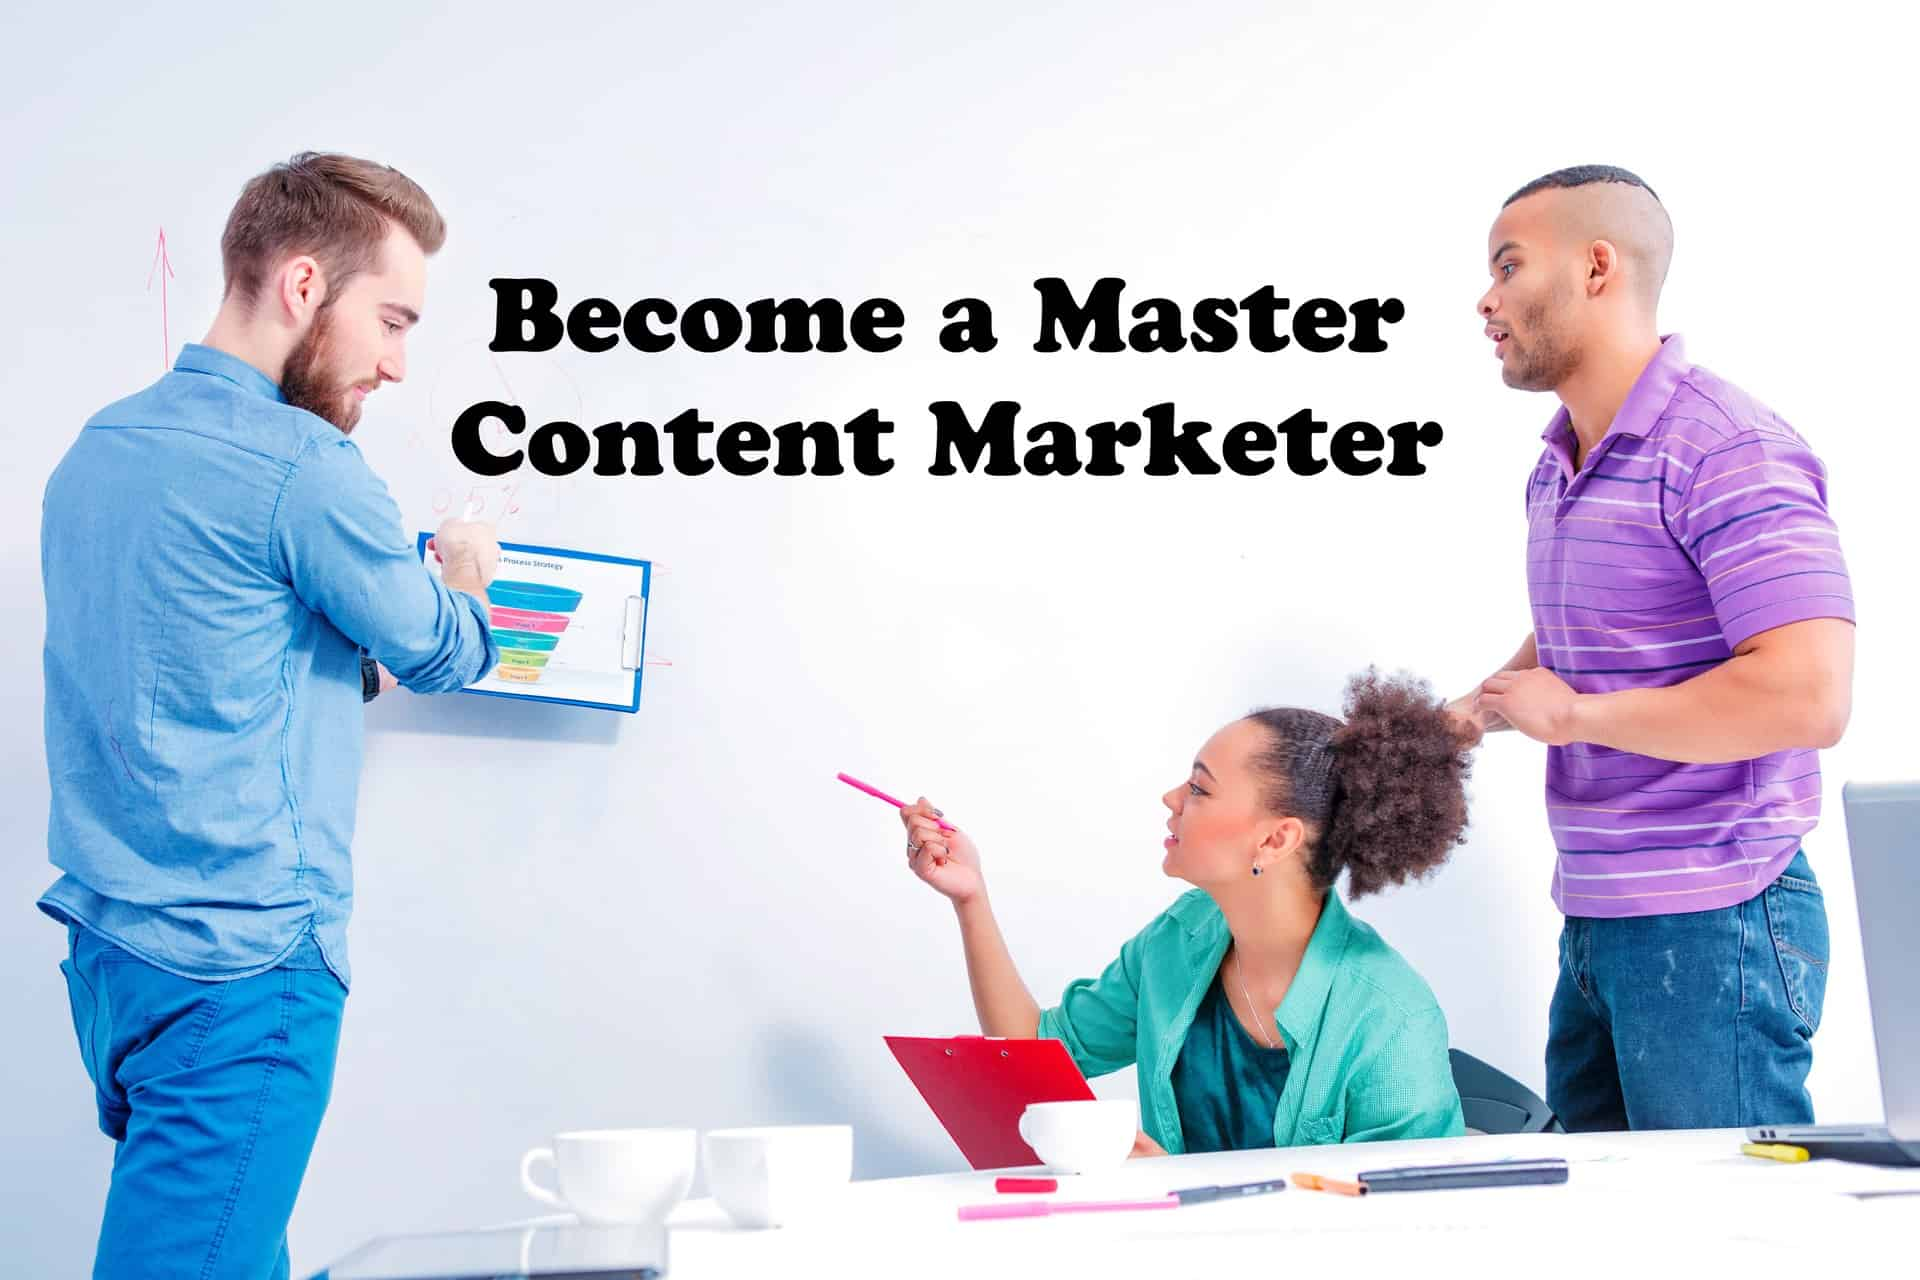 Master Content Marketer